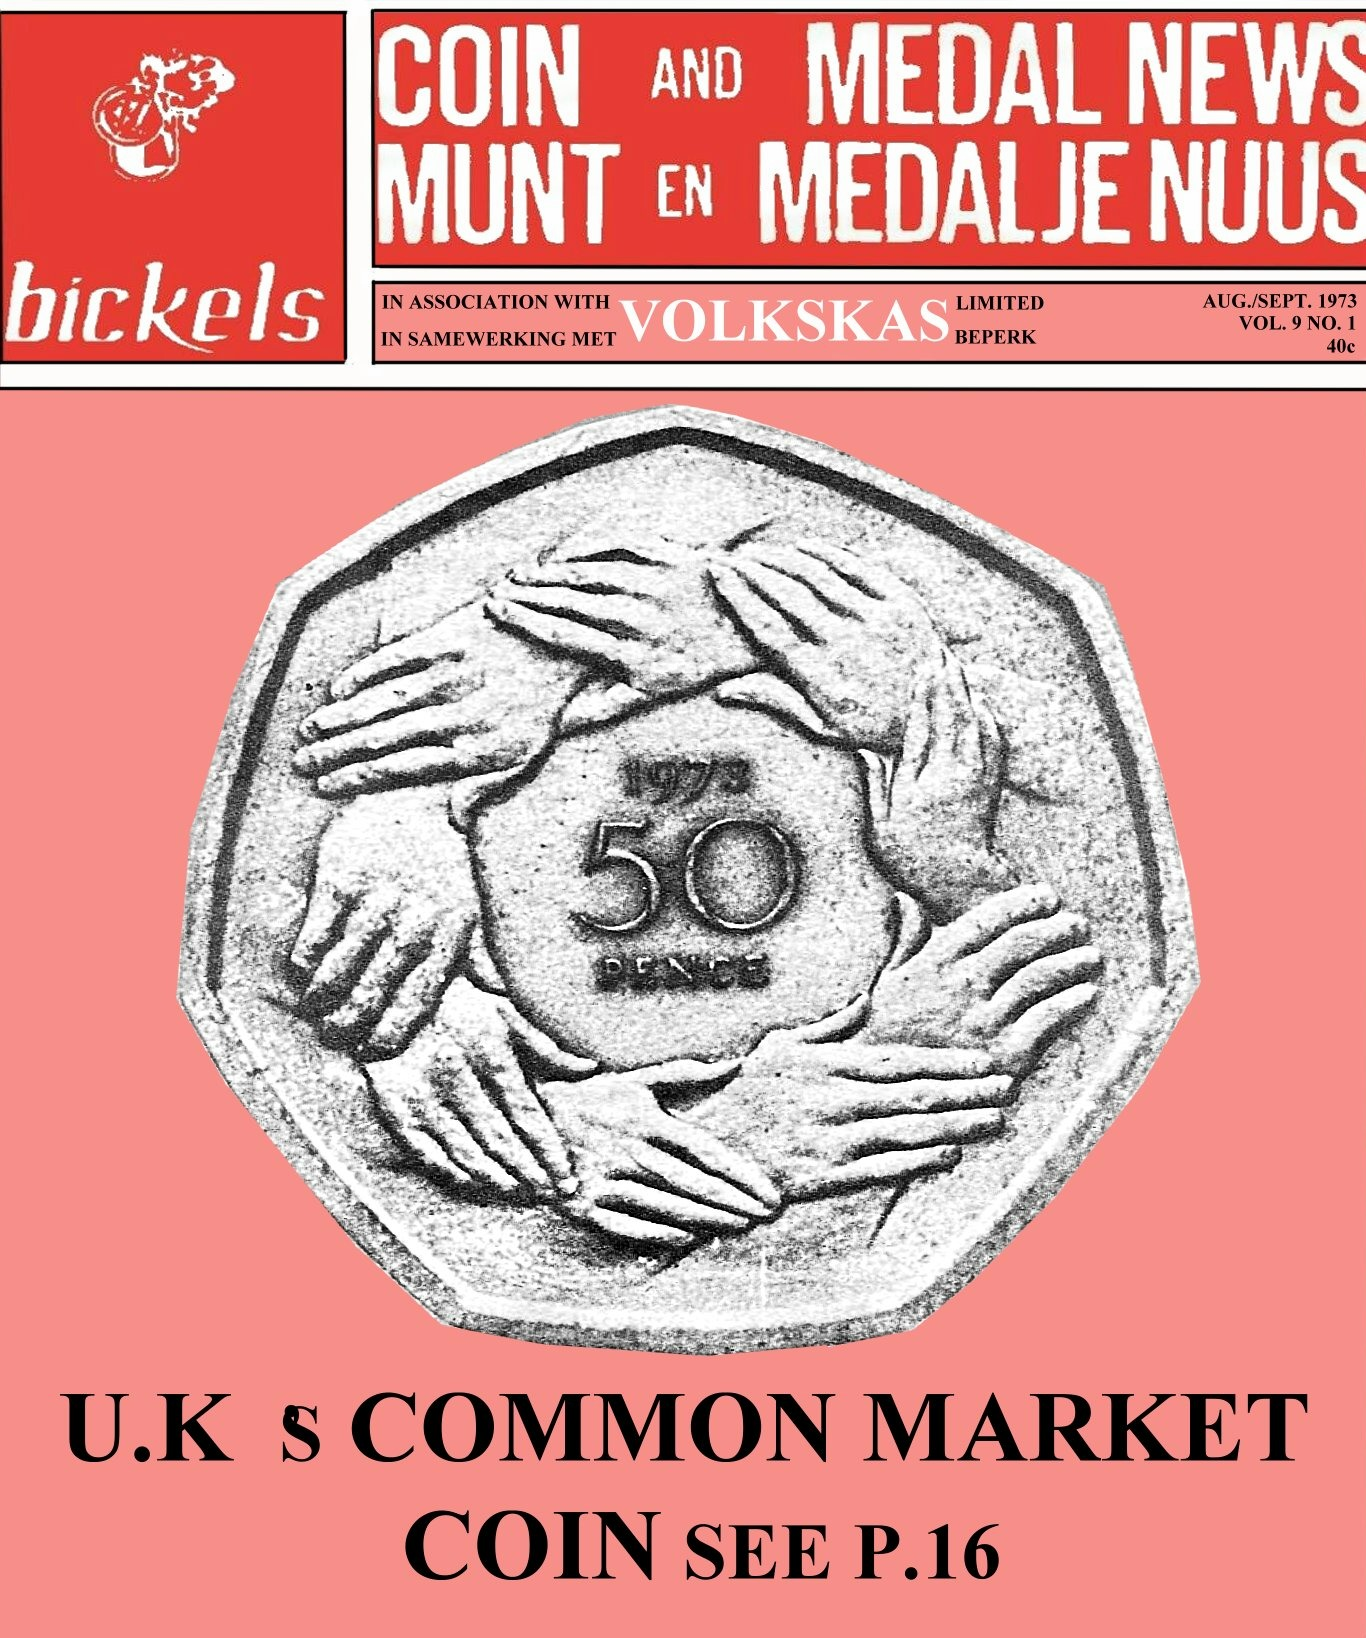 Bickels Coin & Medal News August September 1973 Vol 9 No 1